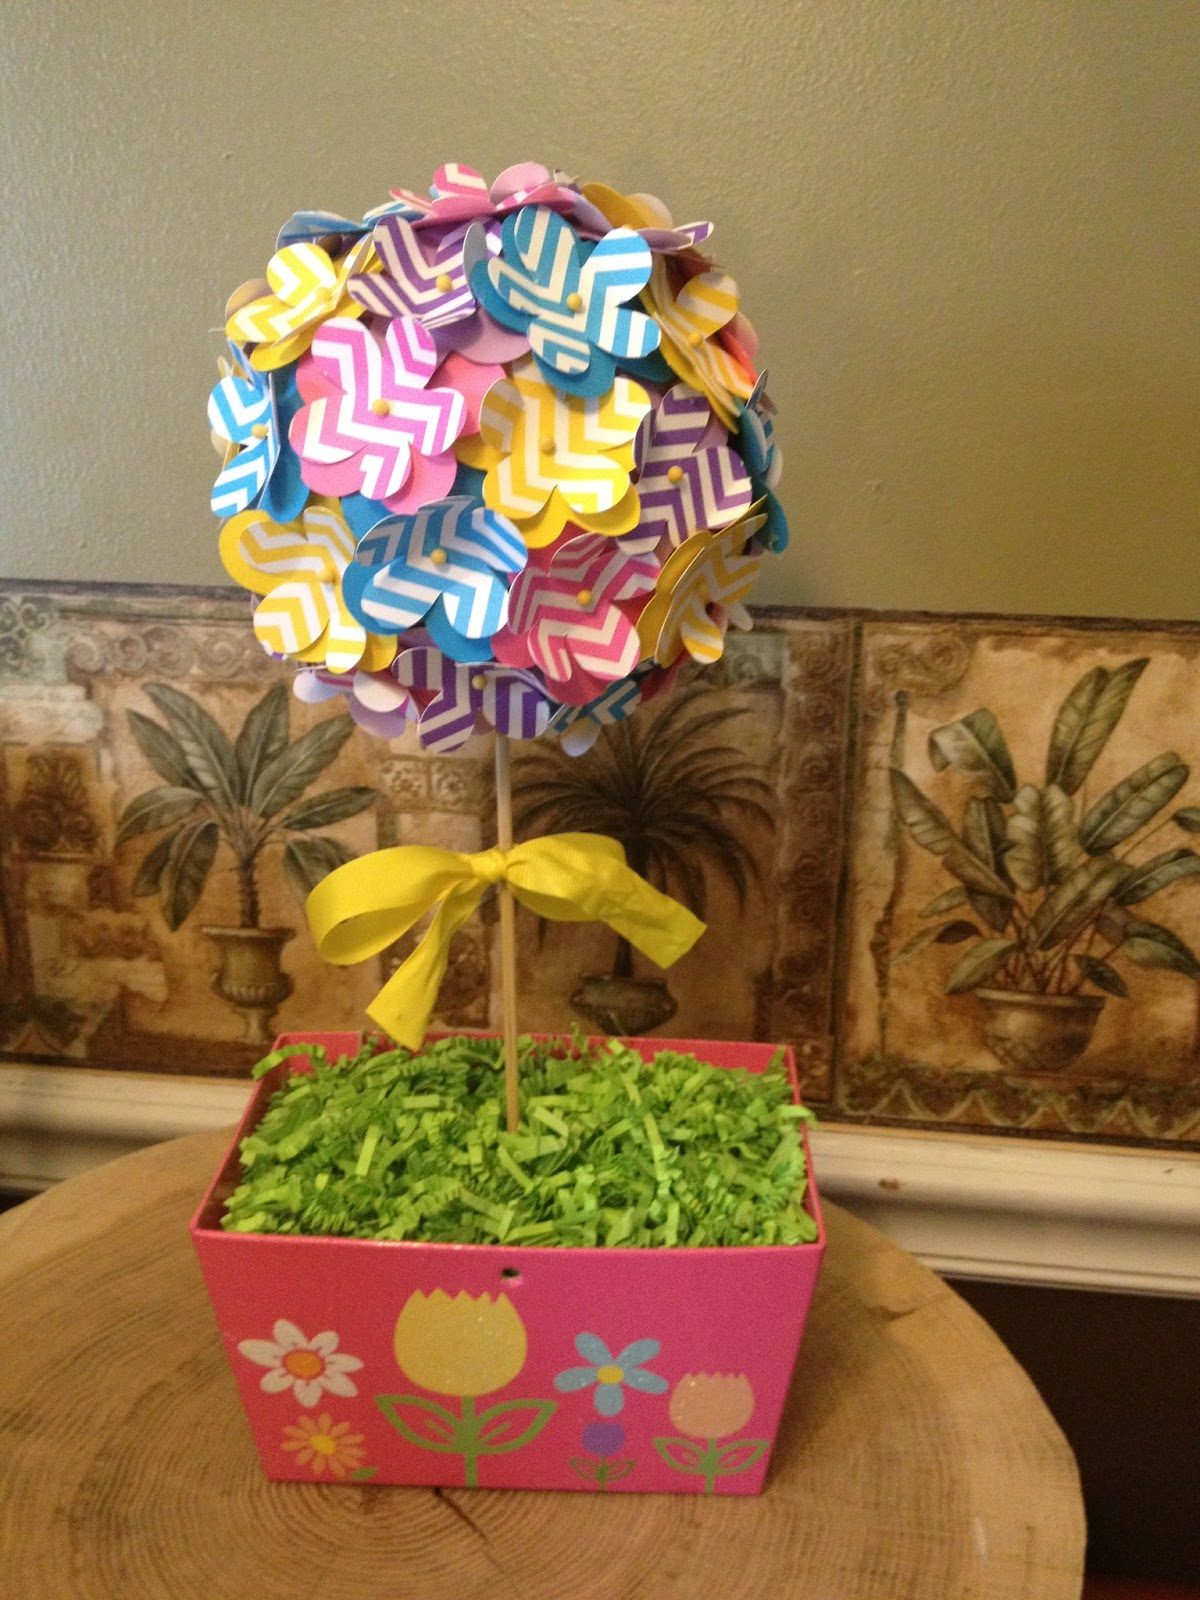 Shop Craft Bake Spring Garden Topiary Made Of Paper Mache And